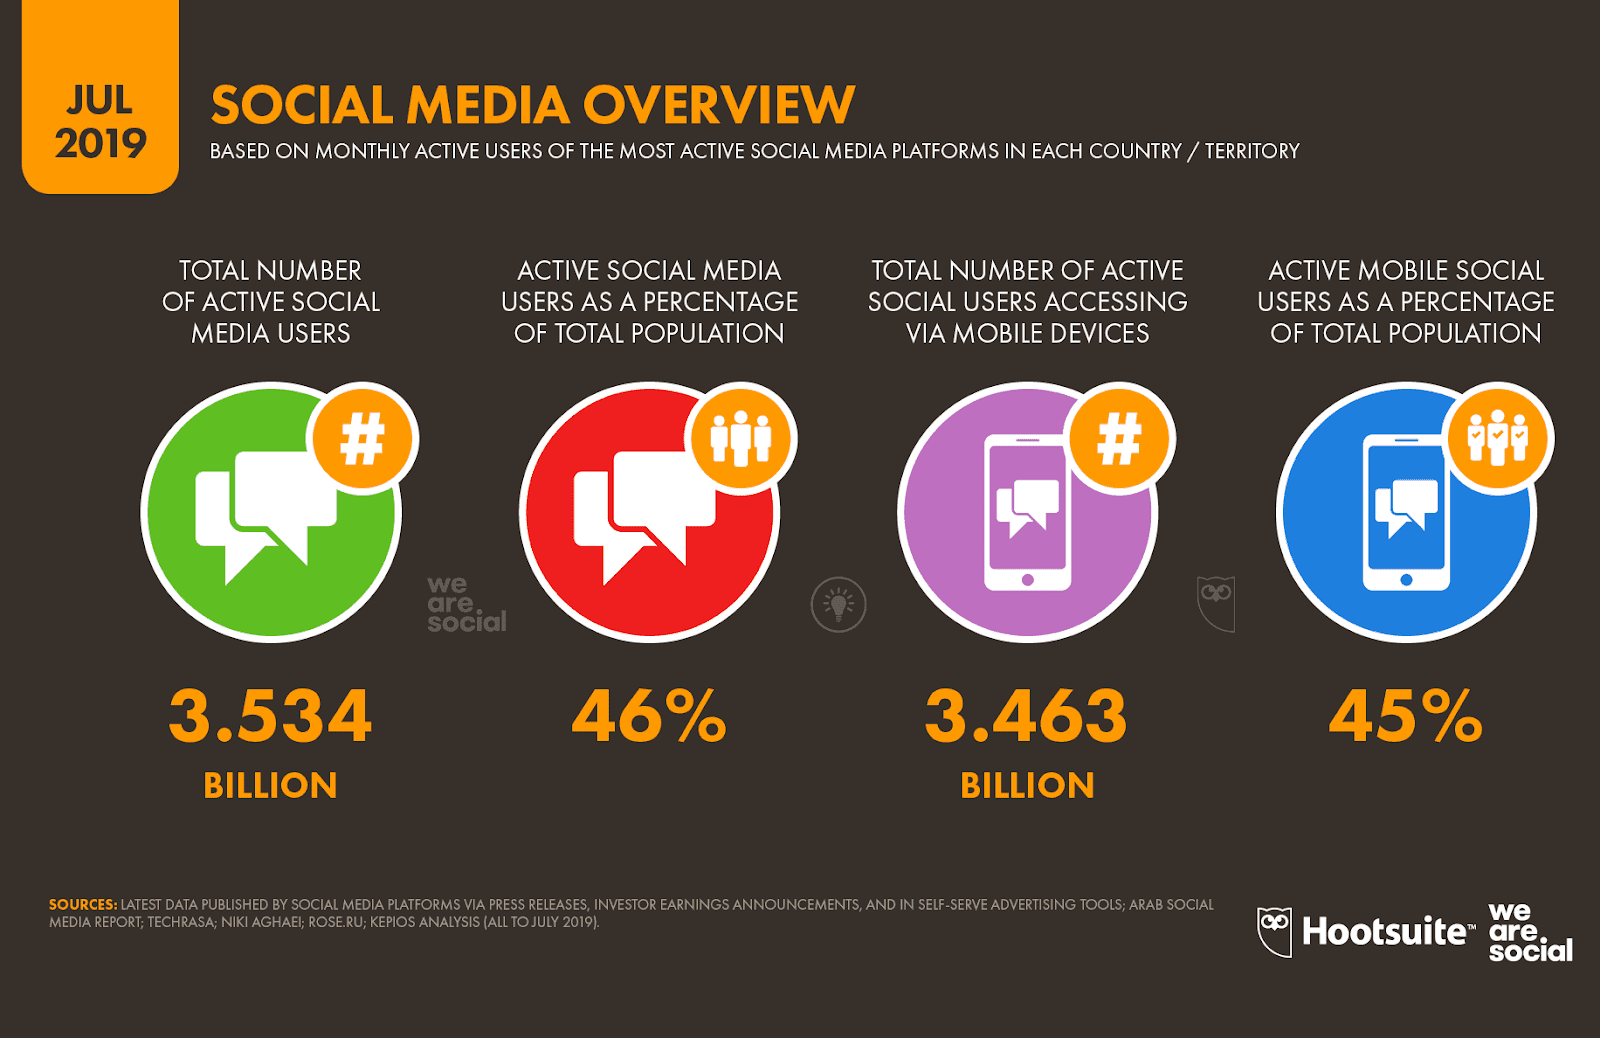 3.5 billion people actively use social media platforms every month, globally